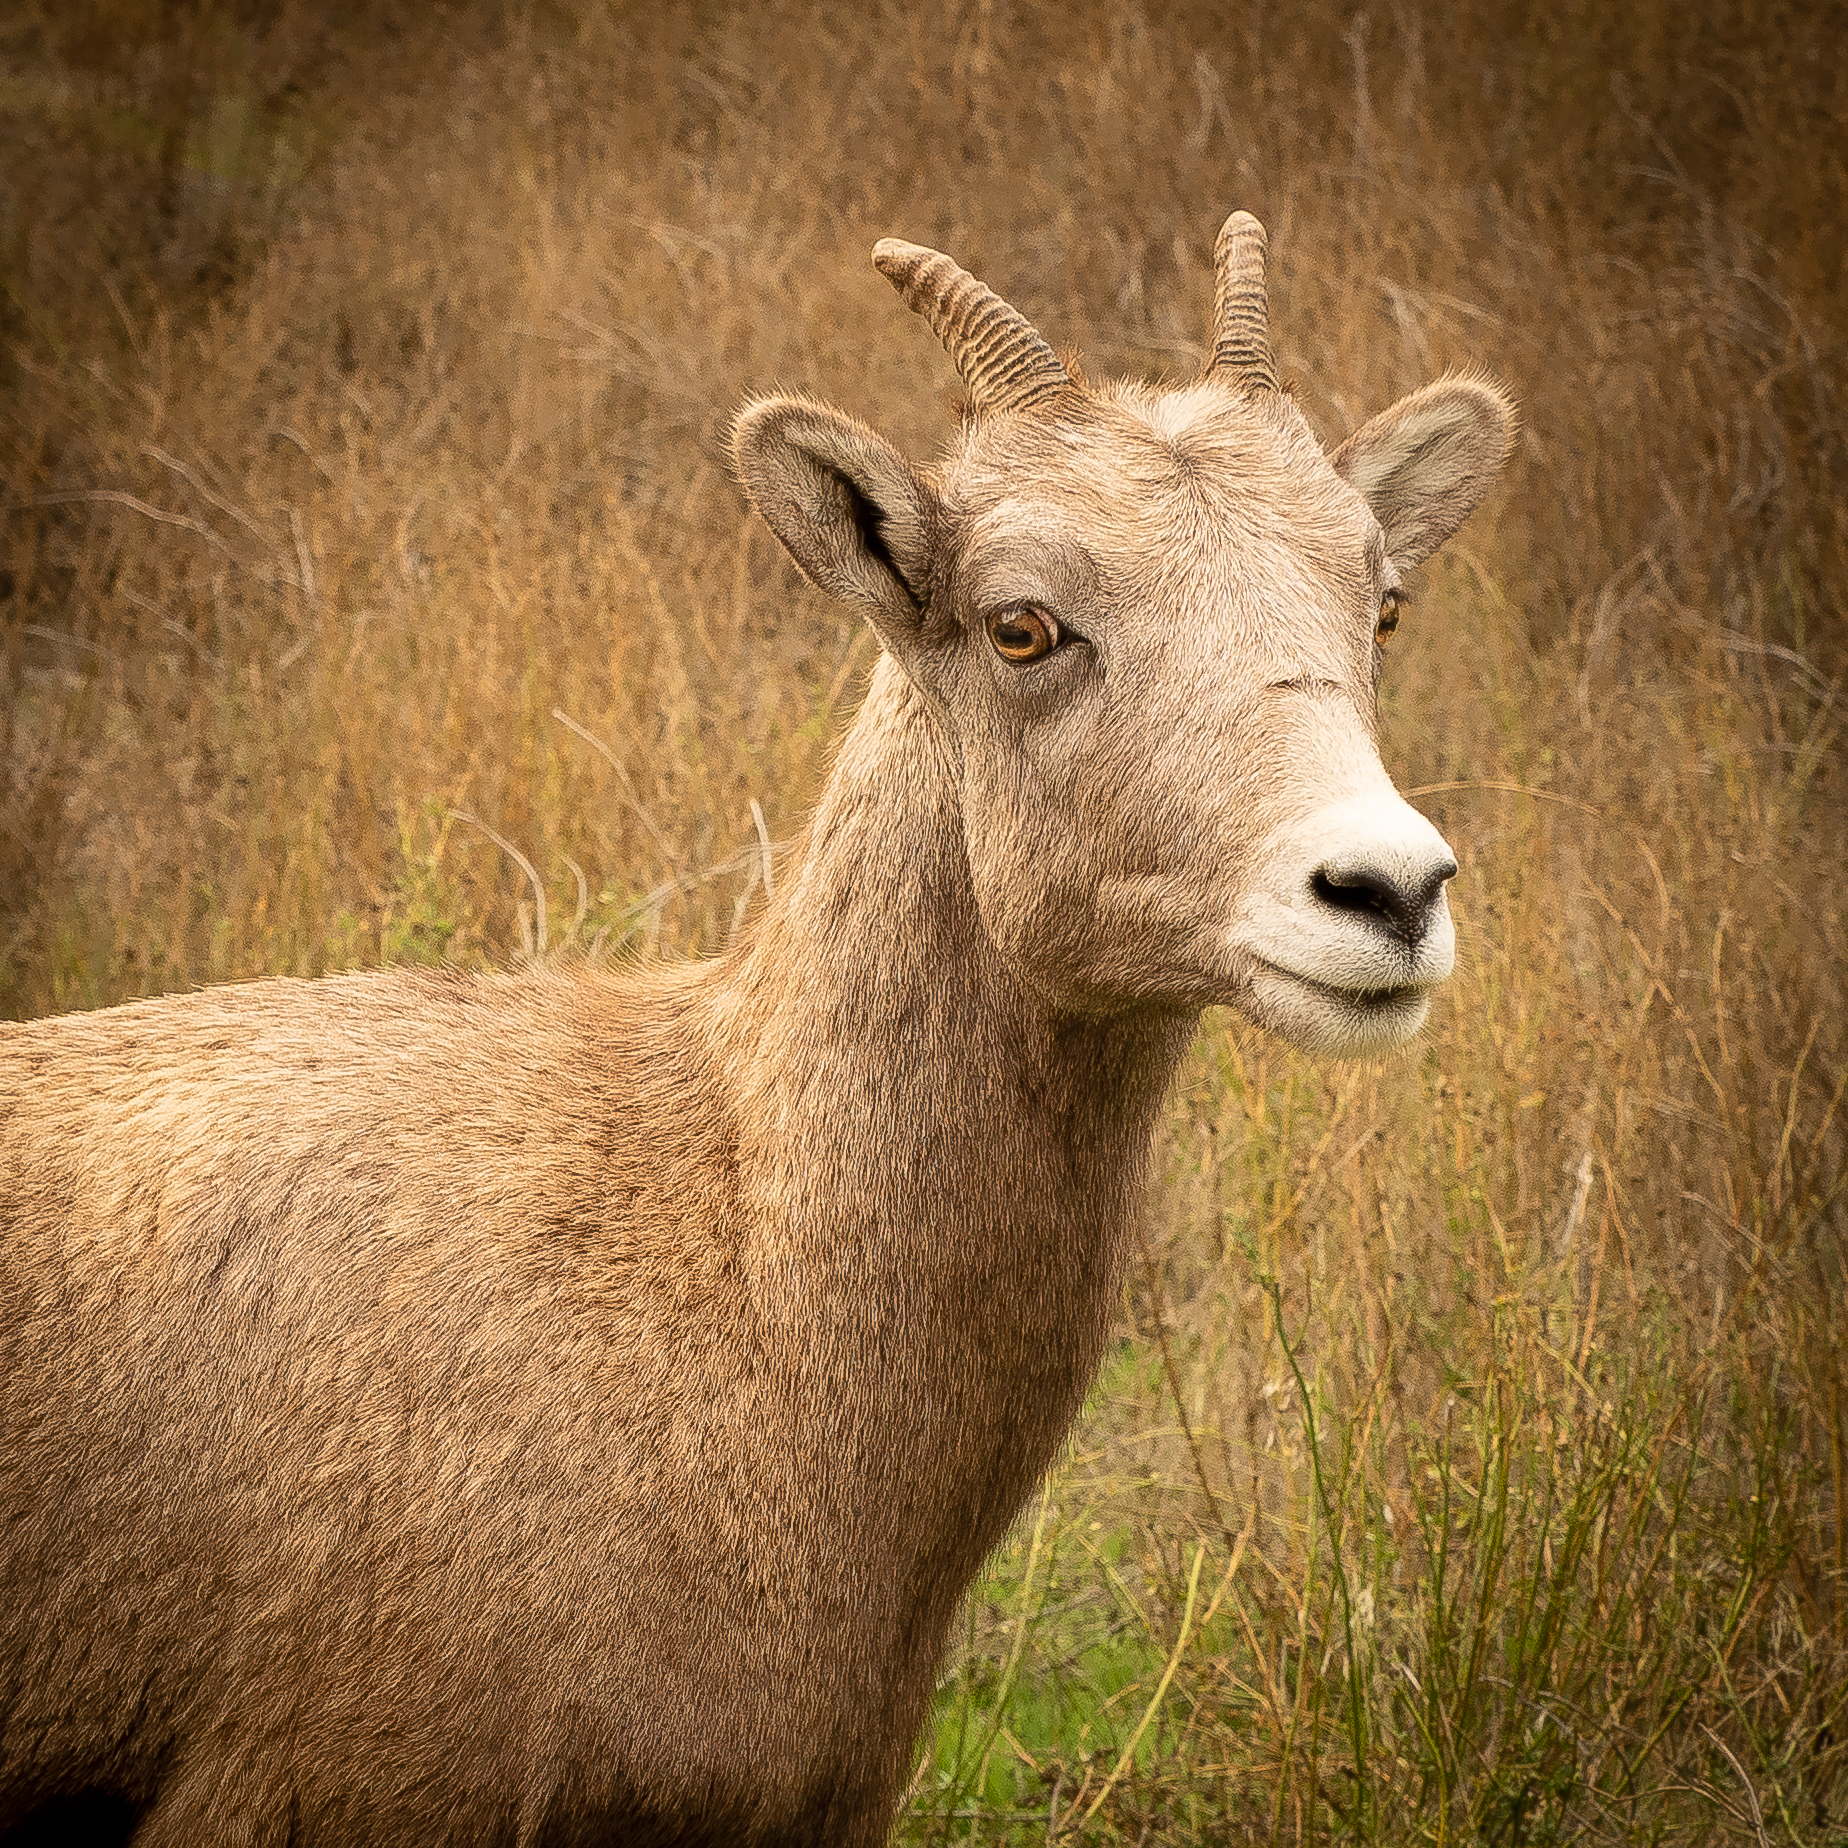 A young bighorn sheep checks us out along the road near Spences Bridge.